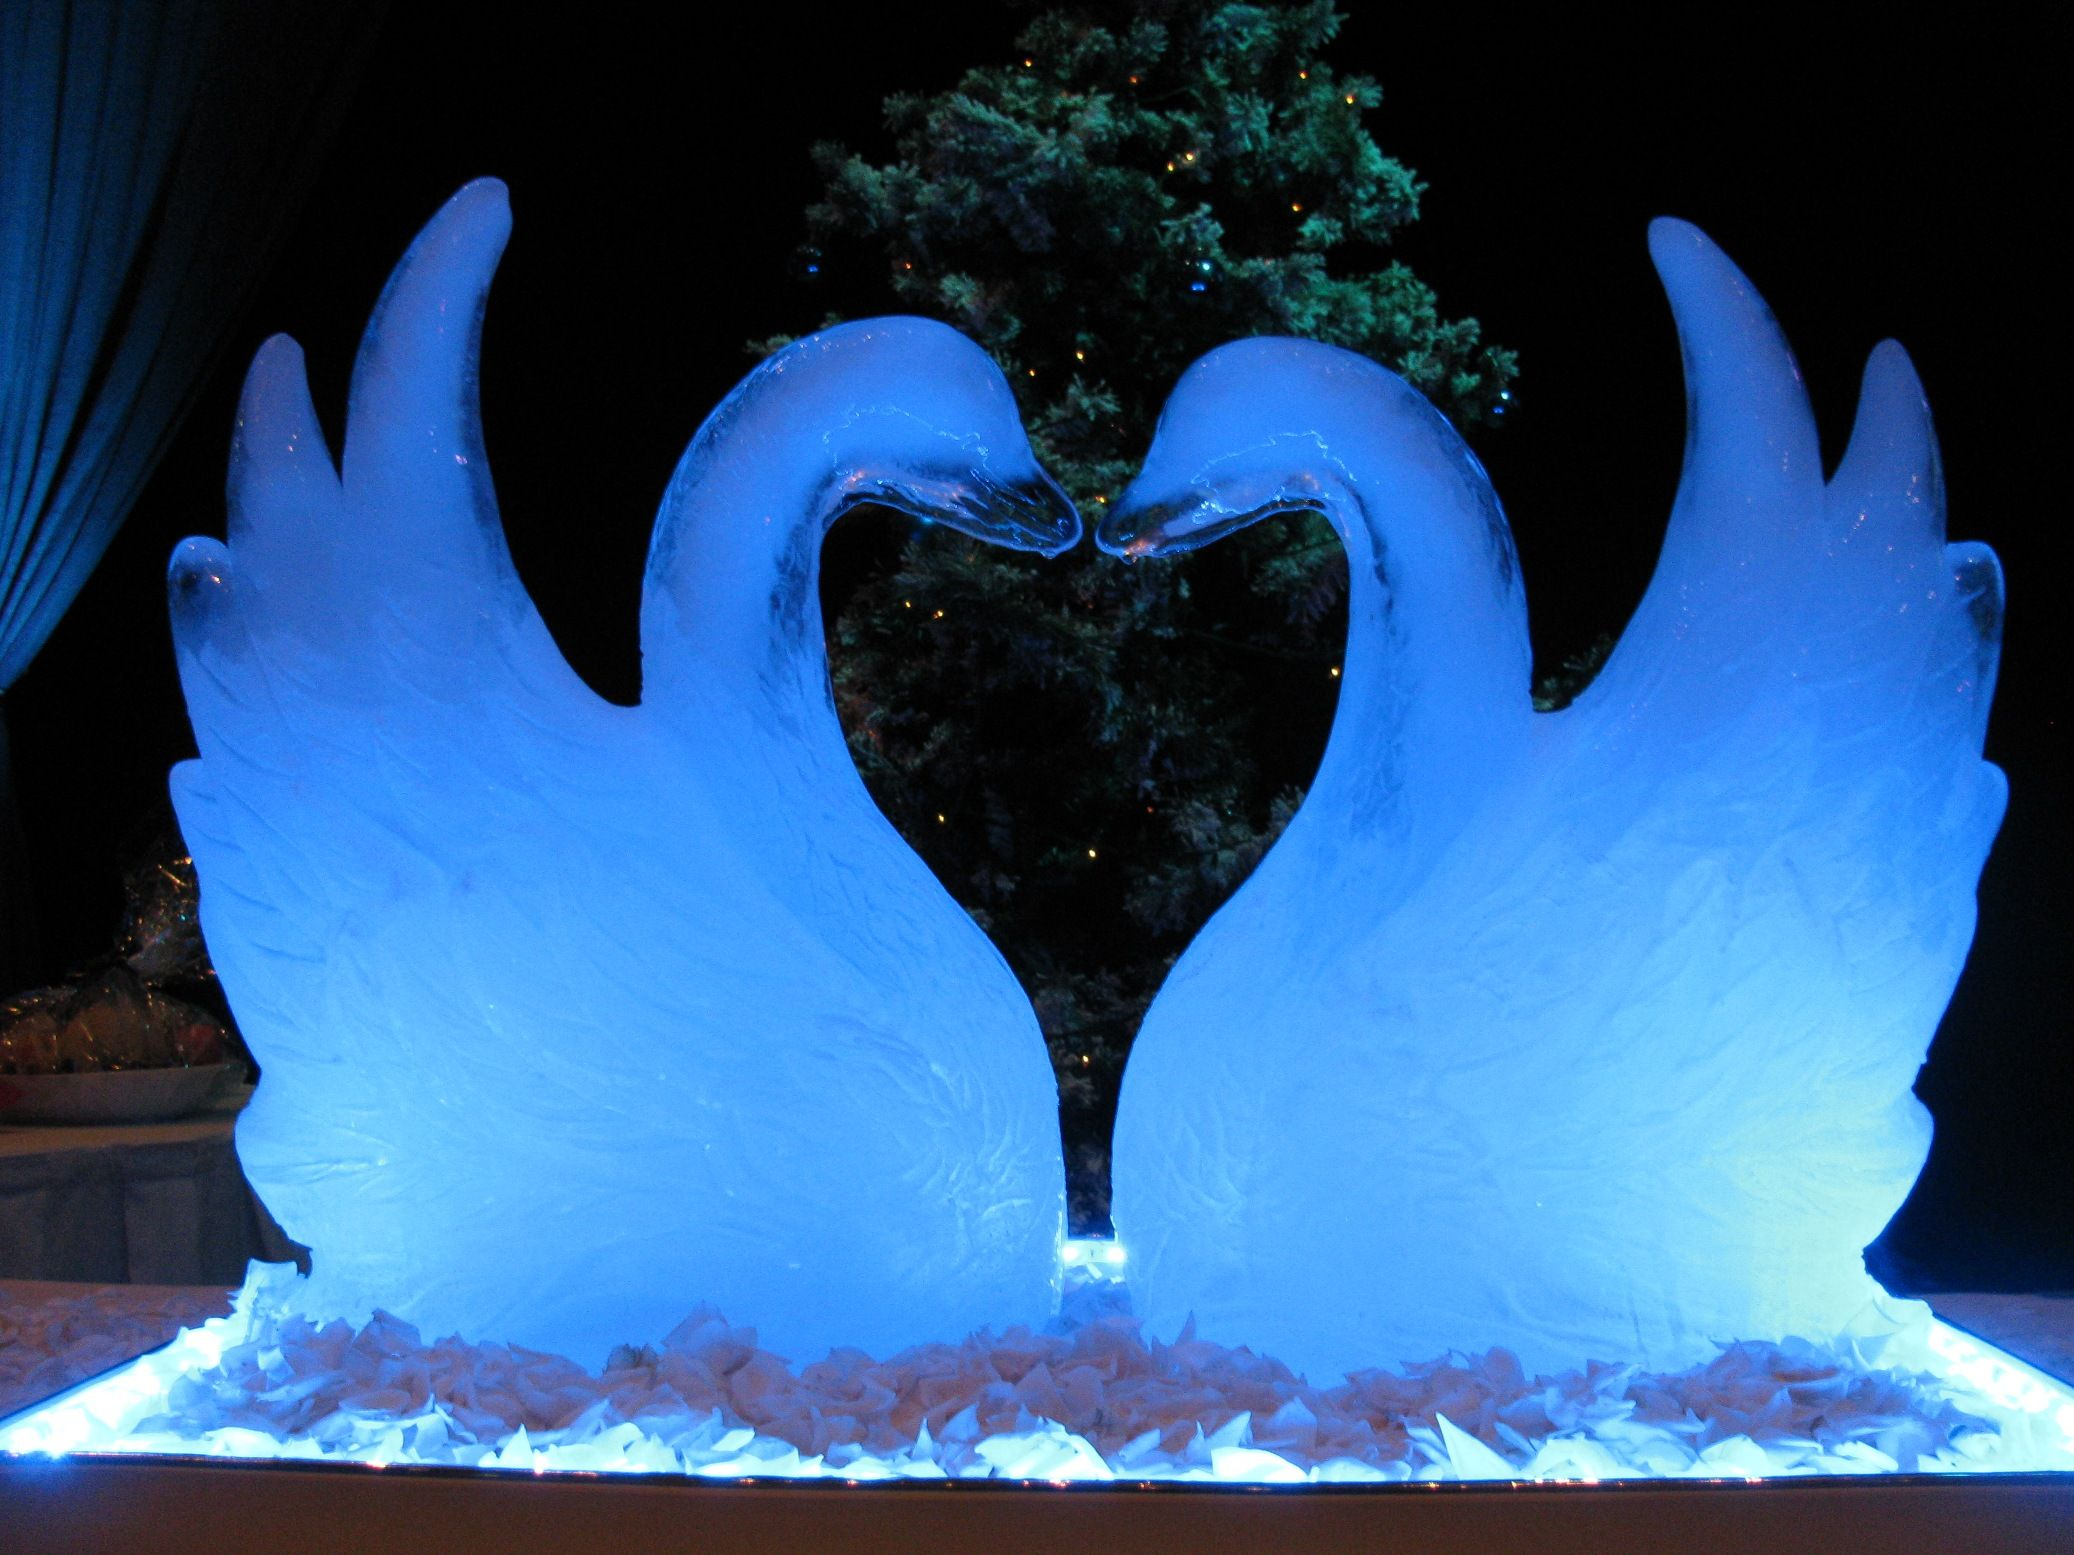 Swan pair Ice sculptures, Ice art, Snow sculptures